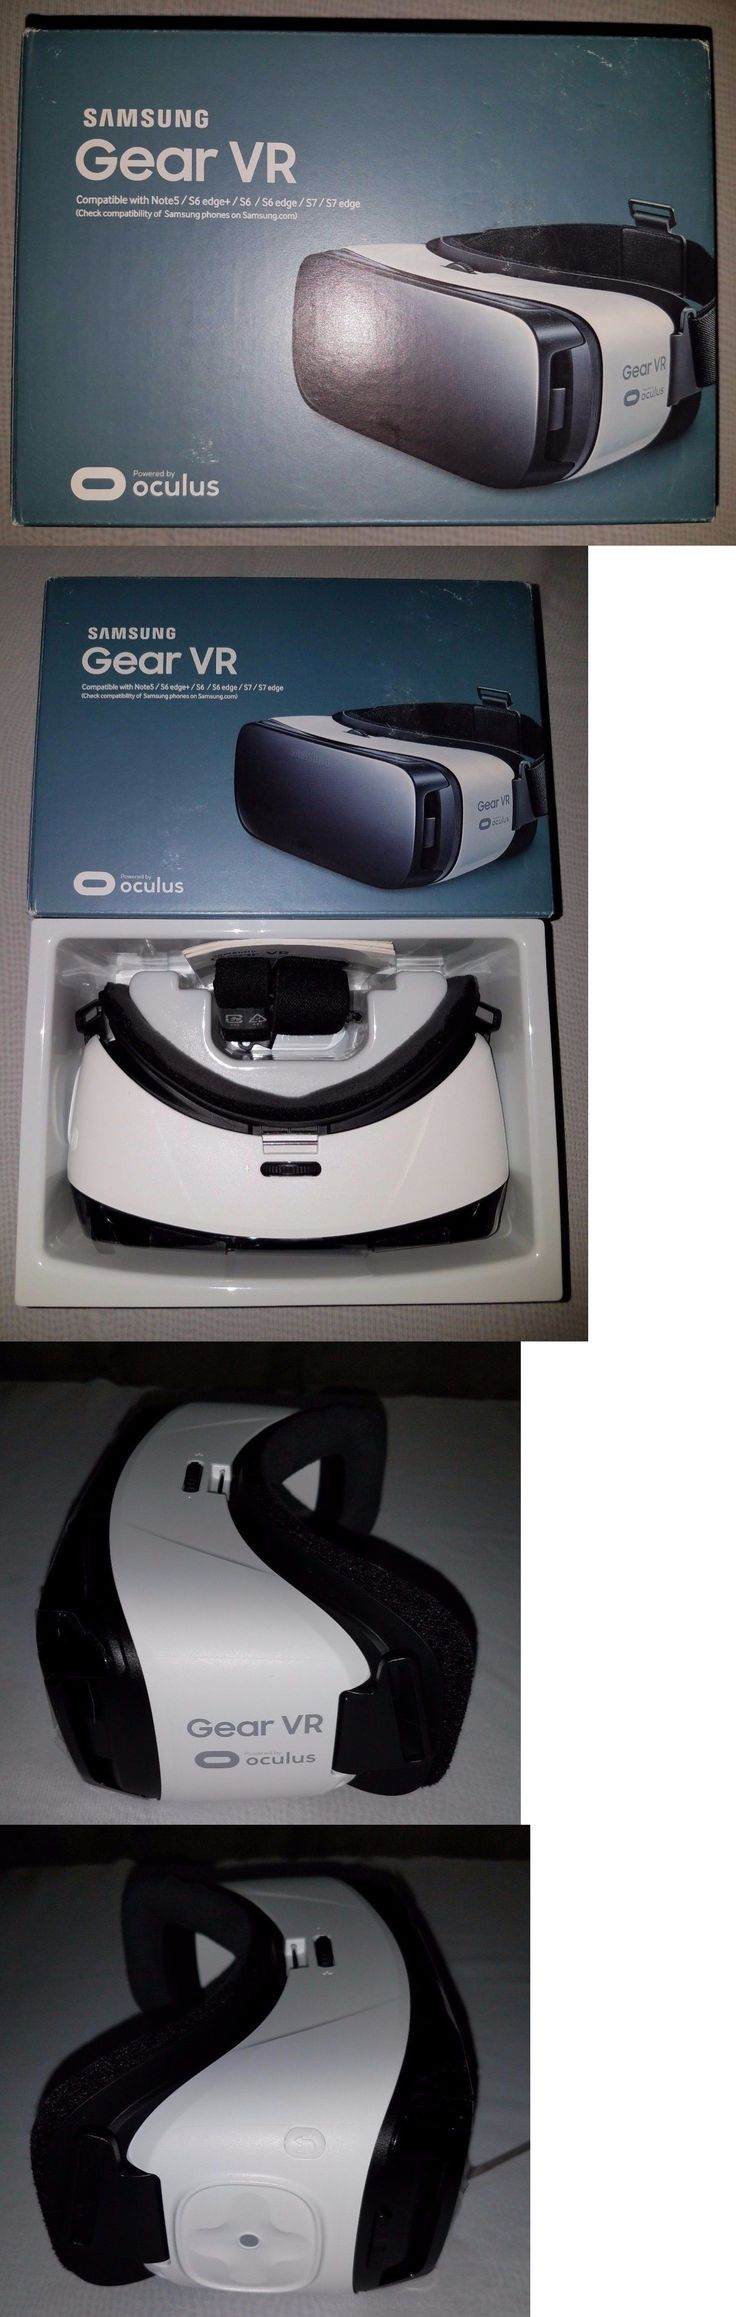 Smartphone VR Headsets: Samsung Gear Vr Oculus Virtual Reality Headset 3D Note 5 Galaxy S6, S6 Edge S7 BUY IT NOW ONLY: $42.5